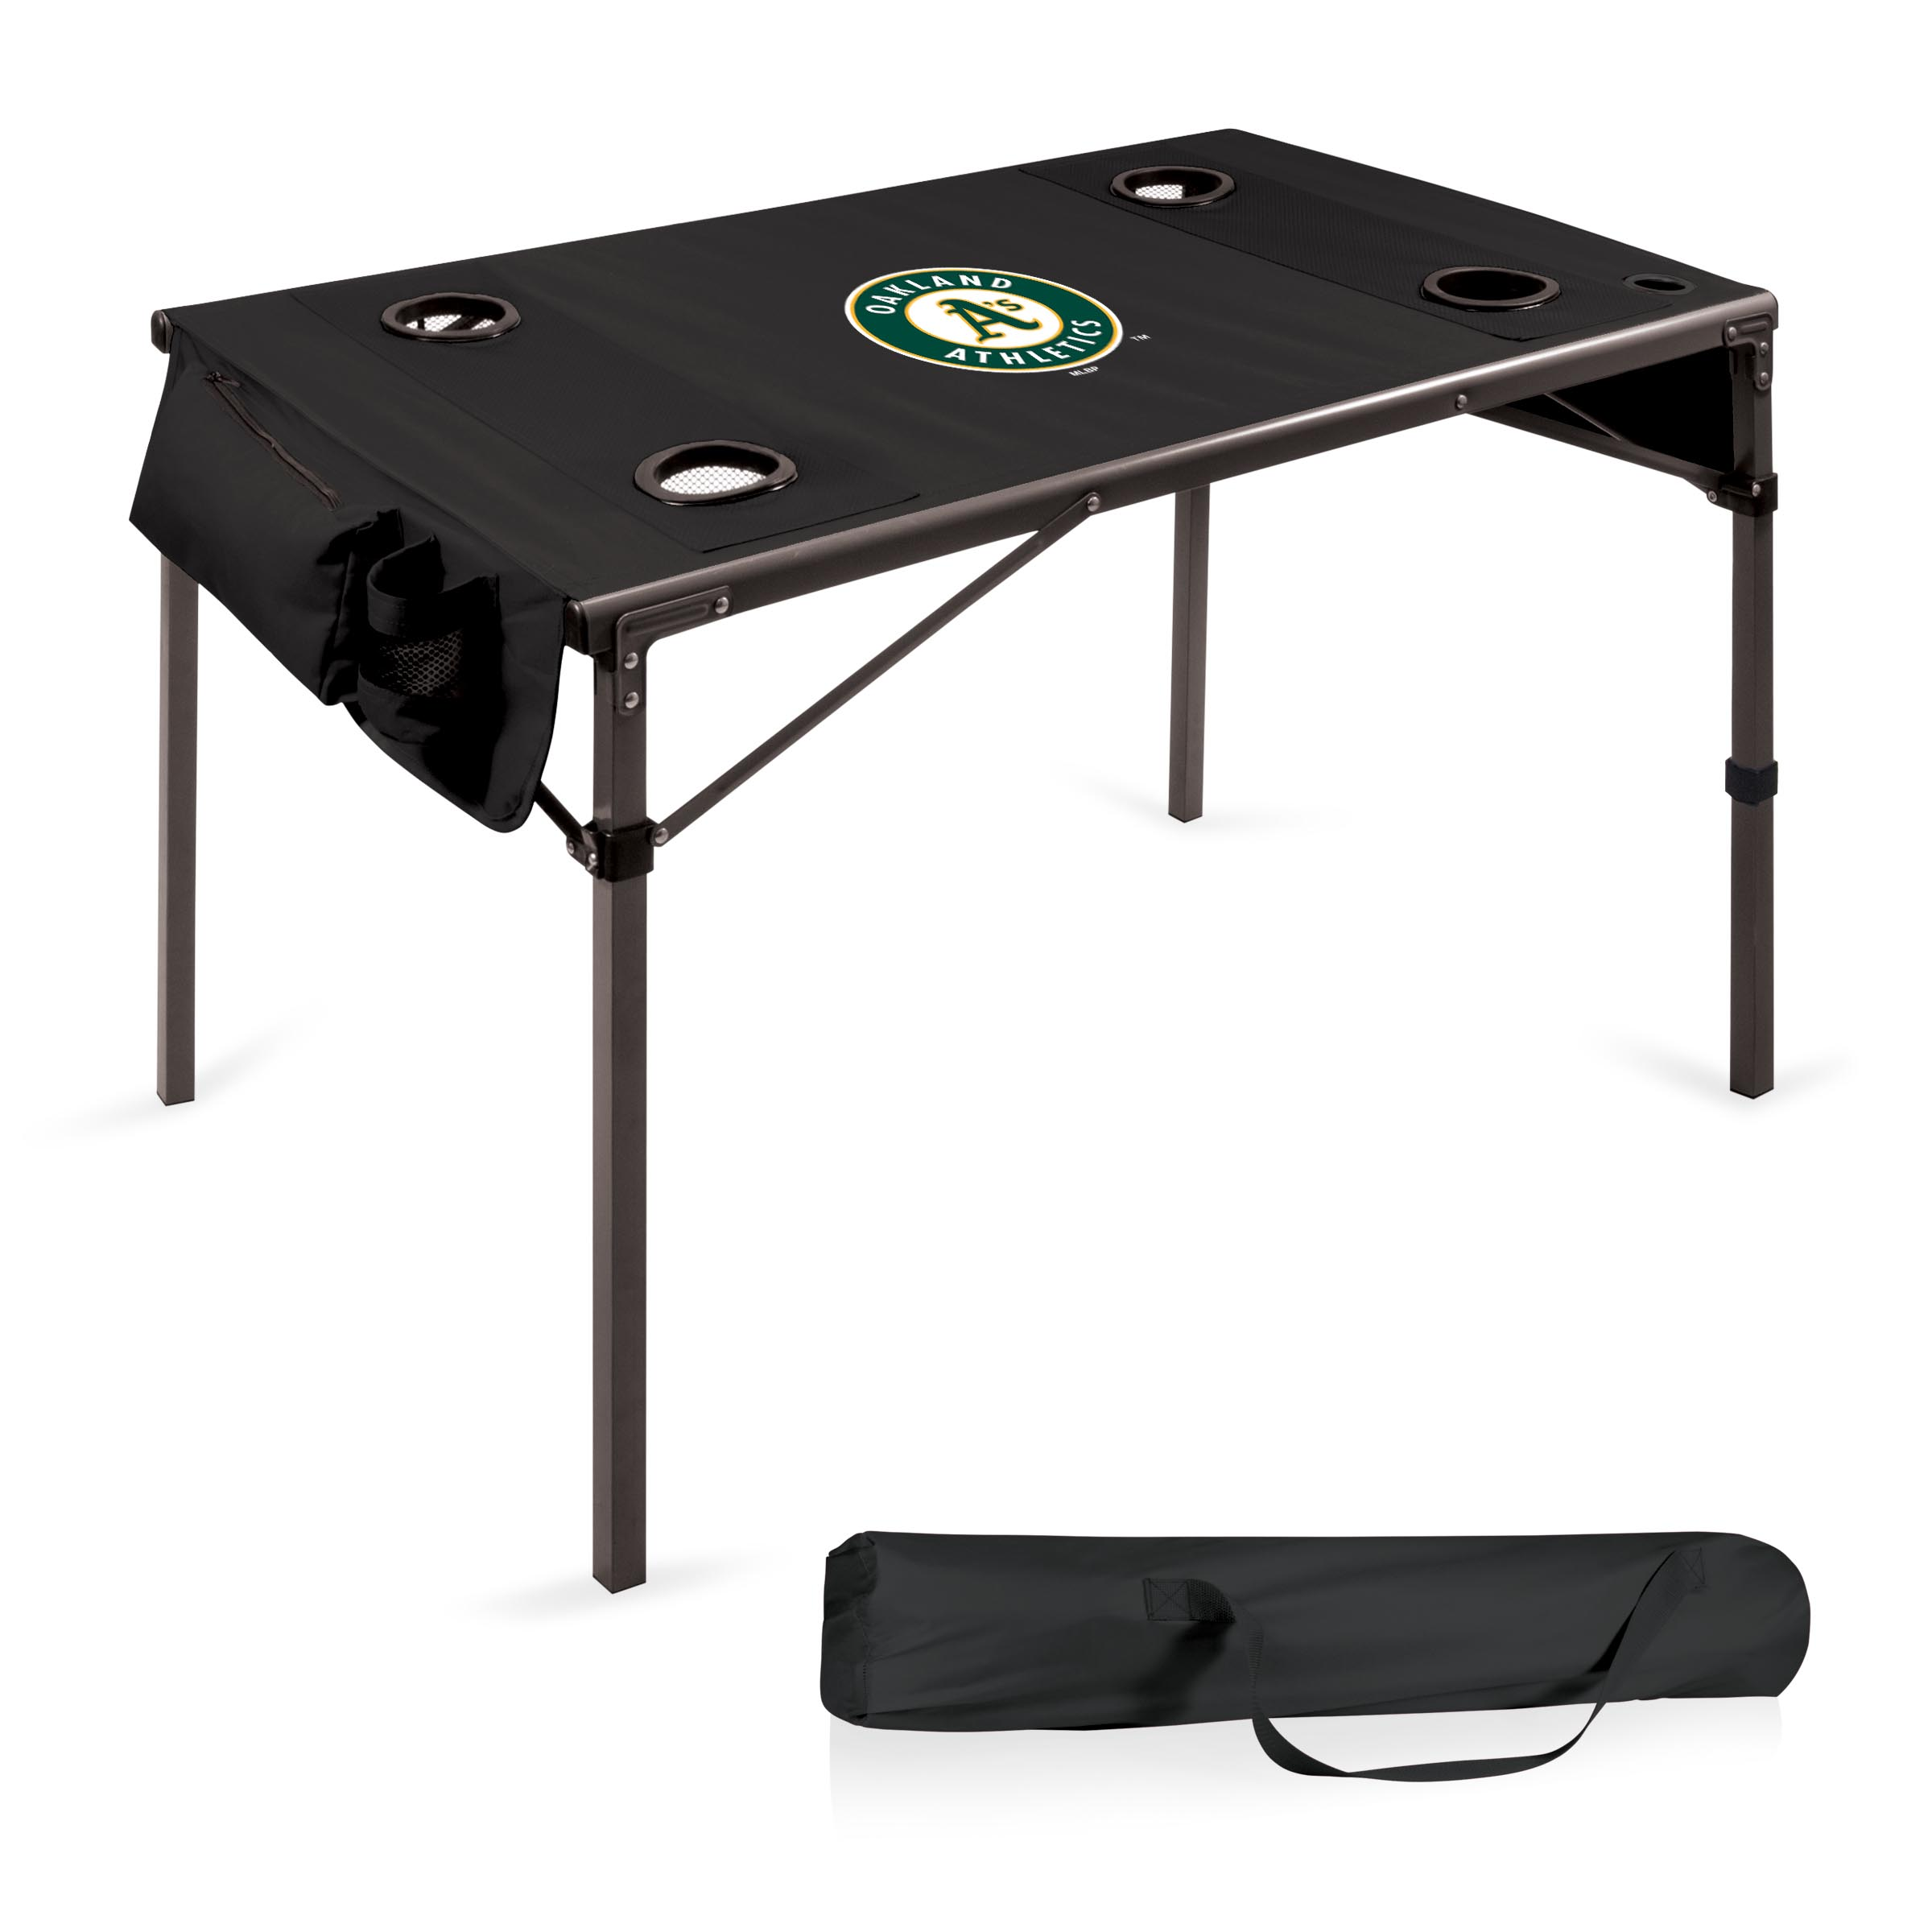 Oakland Athletics Portable Folding Travel Table - Black - No Size